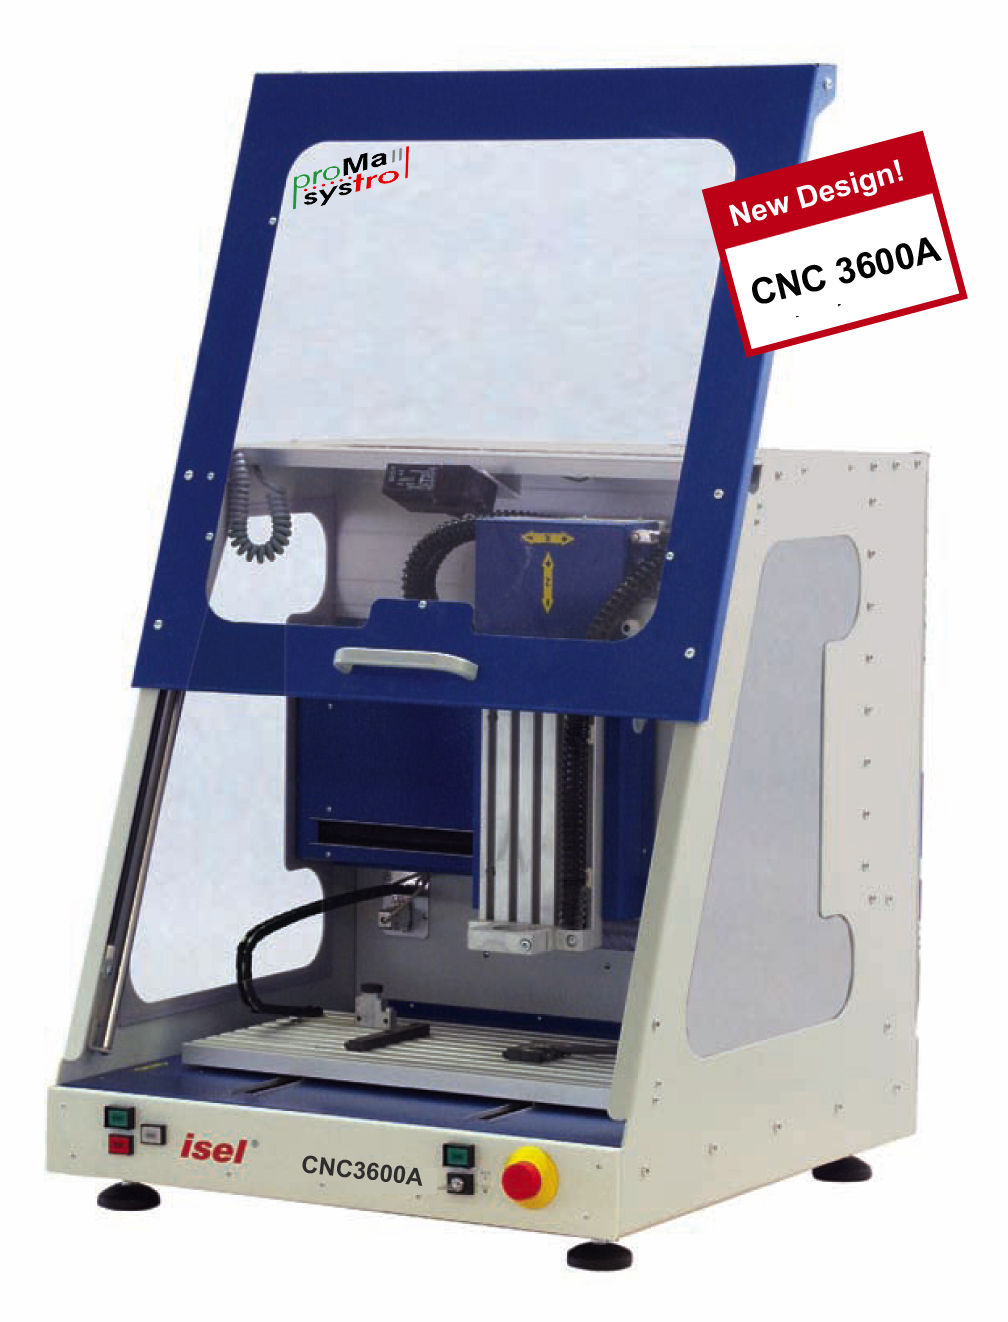 Printed Circuit Board Production Machine Cnc3600a Beijing Torch Making The